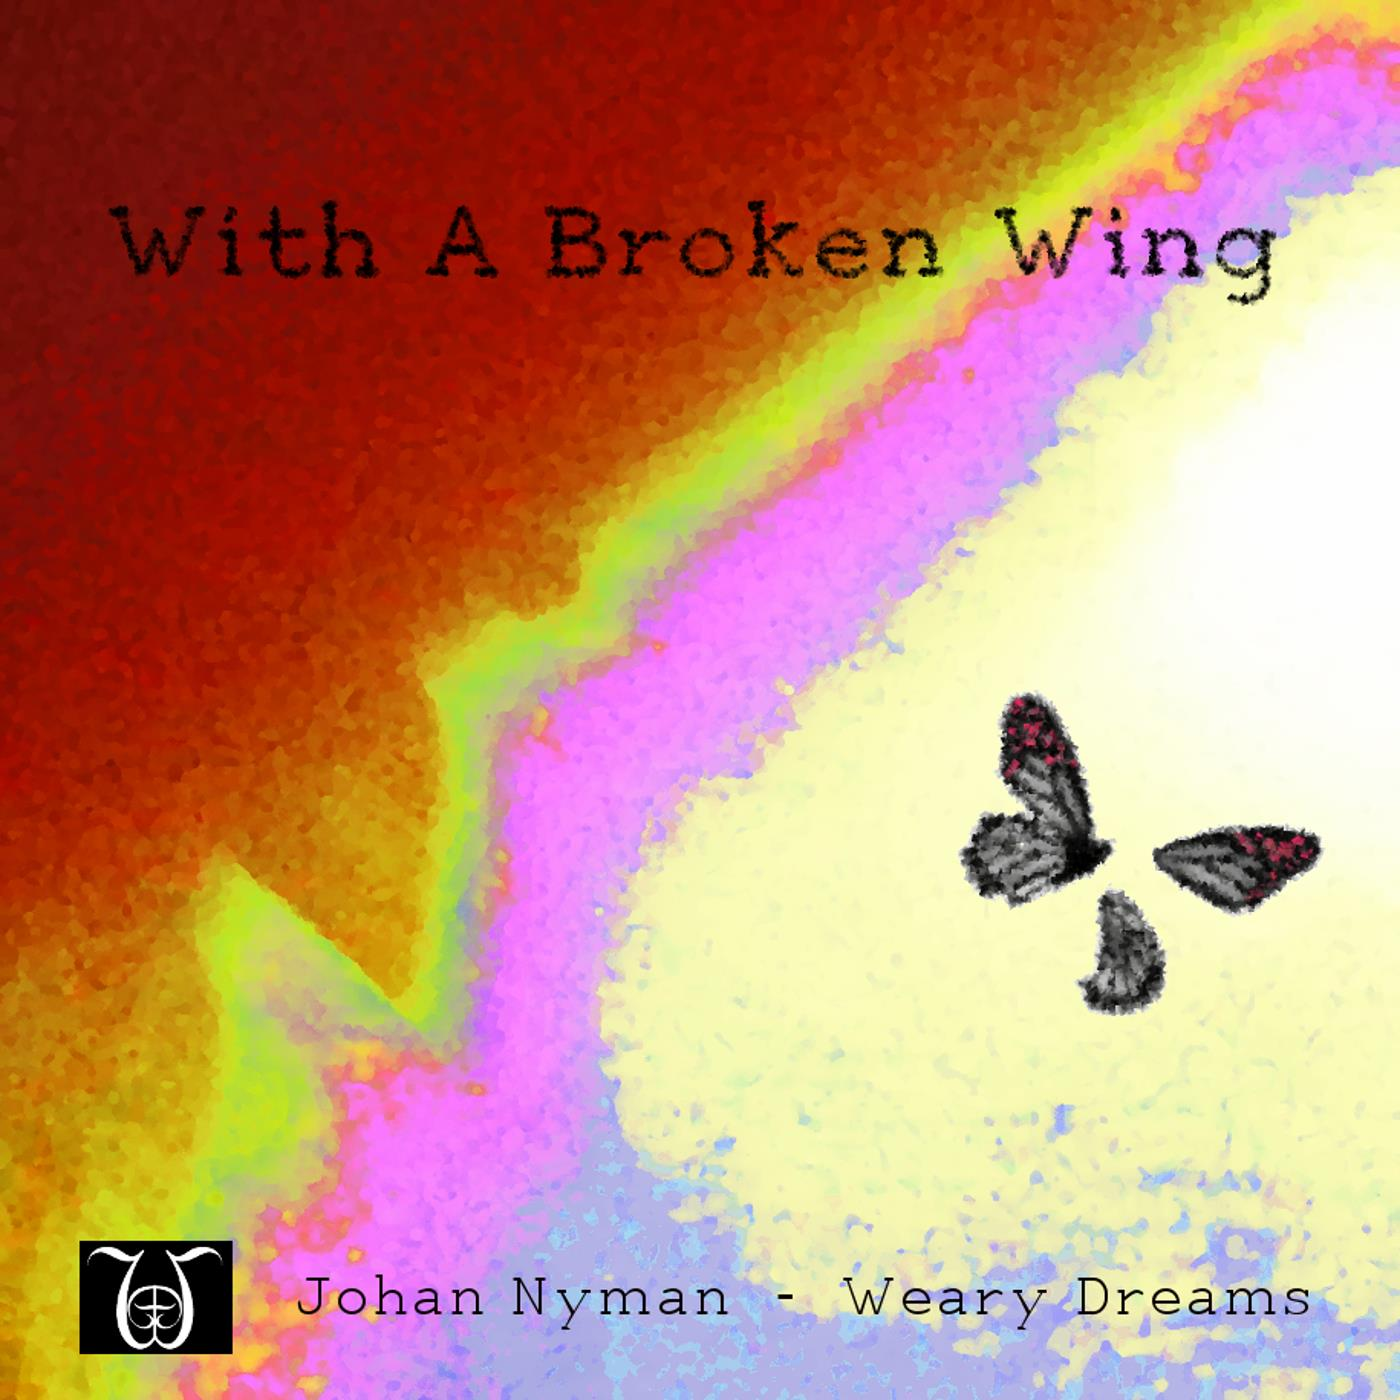 With A Broken Wing